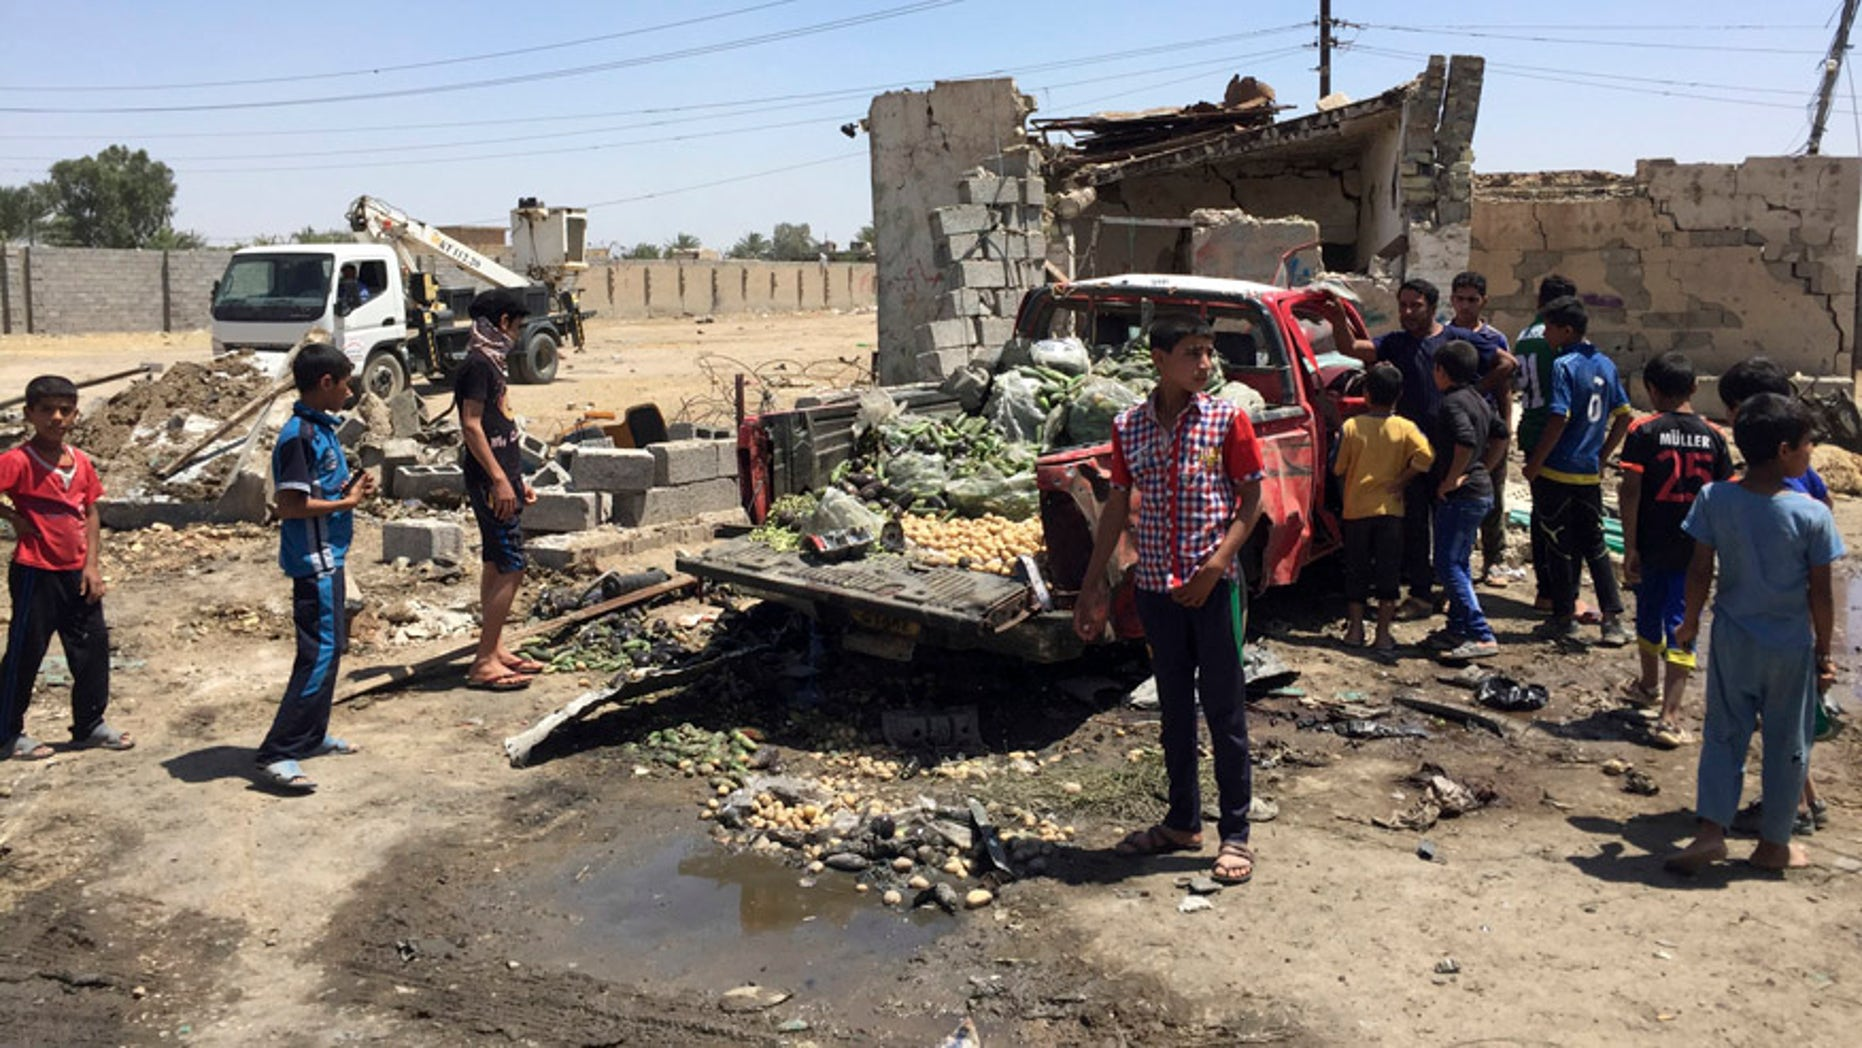 April 30, 2016: Civilians inspect the scene of car bombing at an open-air market selling fruit, vegetables and meat in Baghdad's southeast suburb of Nahrawan, Iraq.